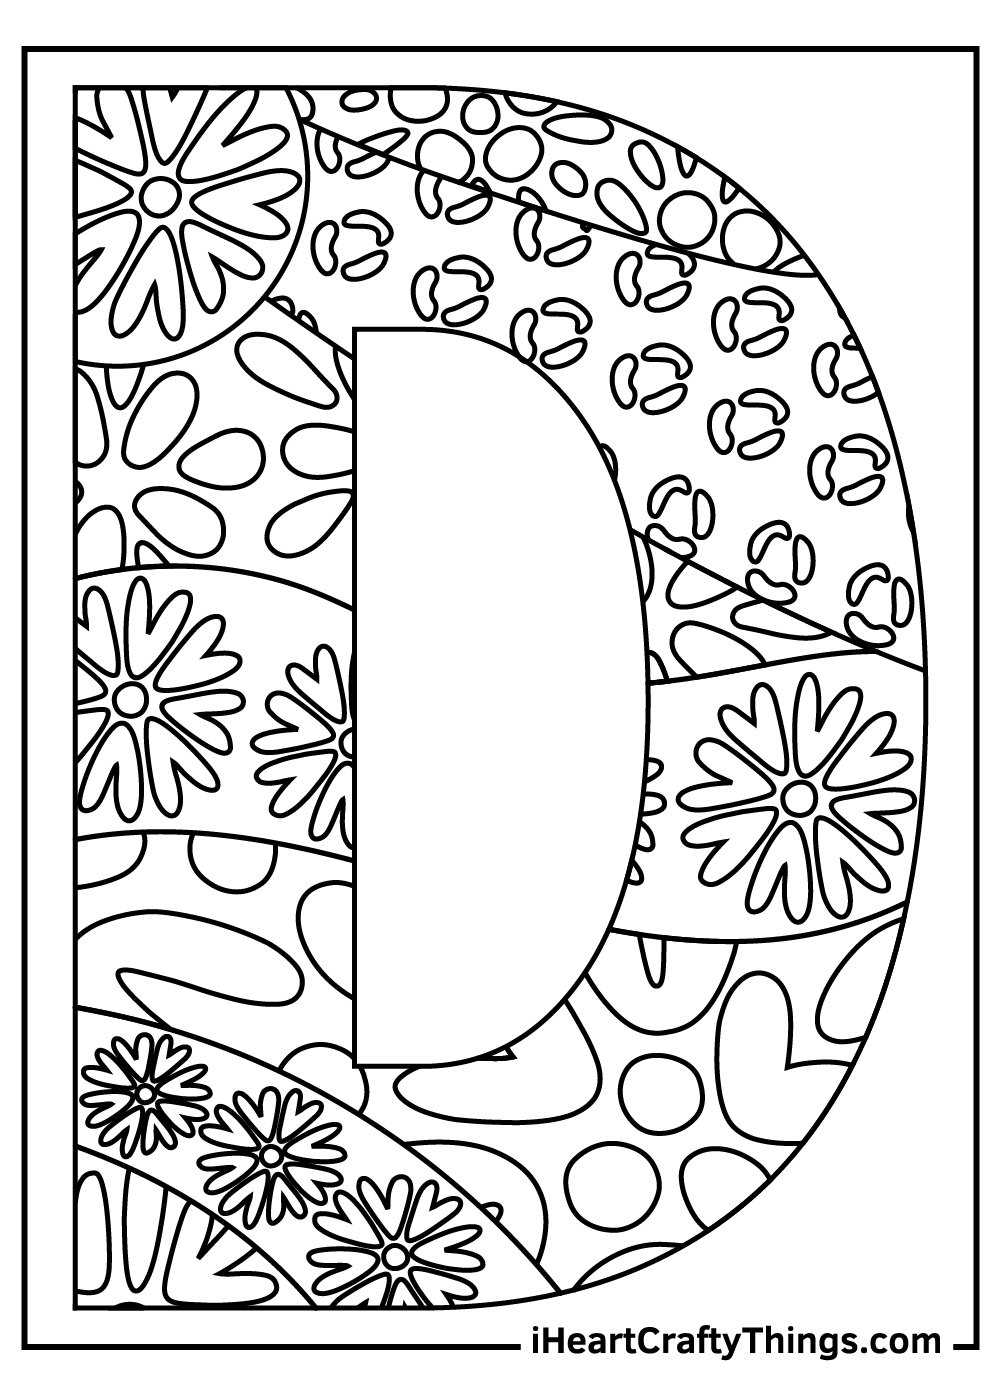 letter d coloring pages free download for kids